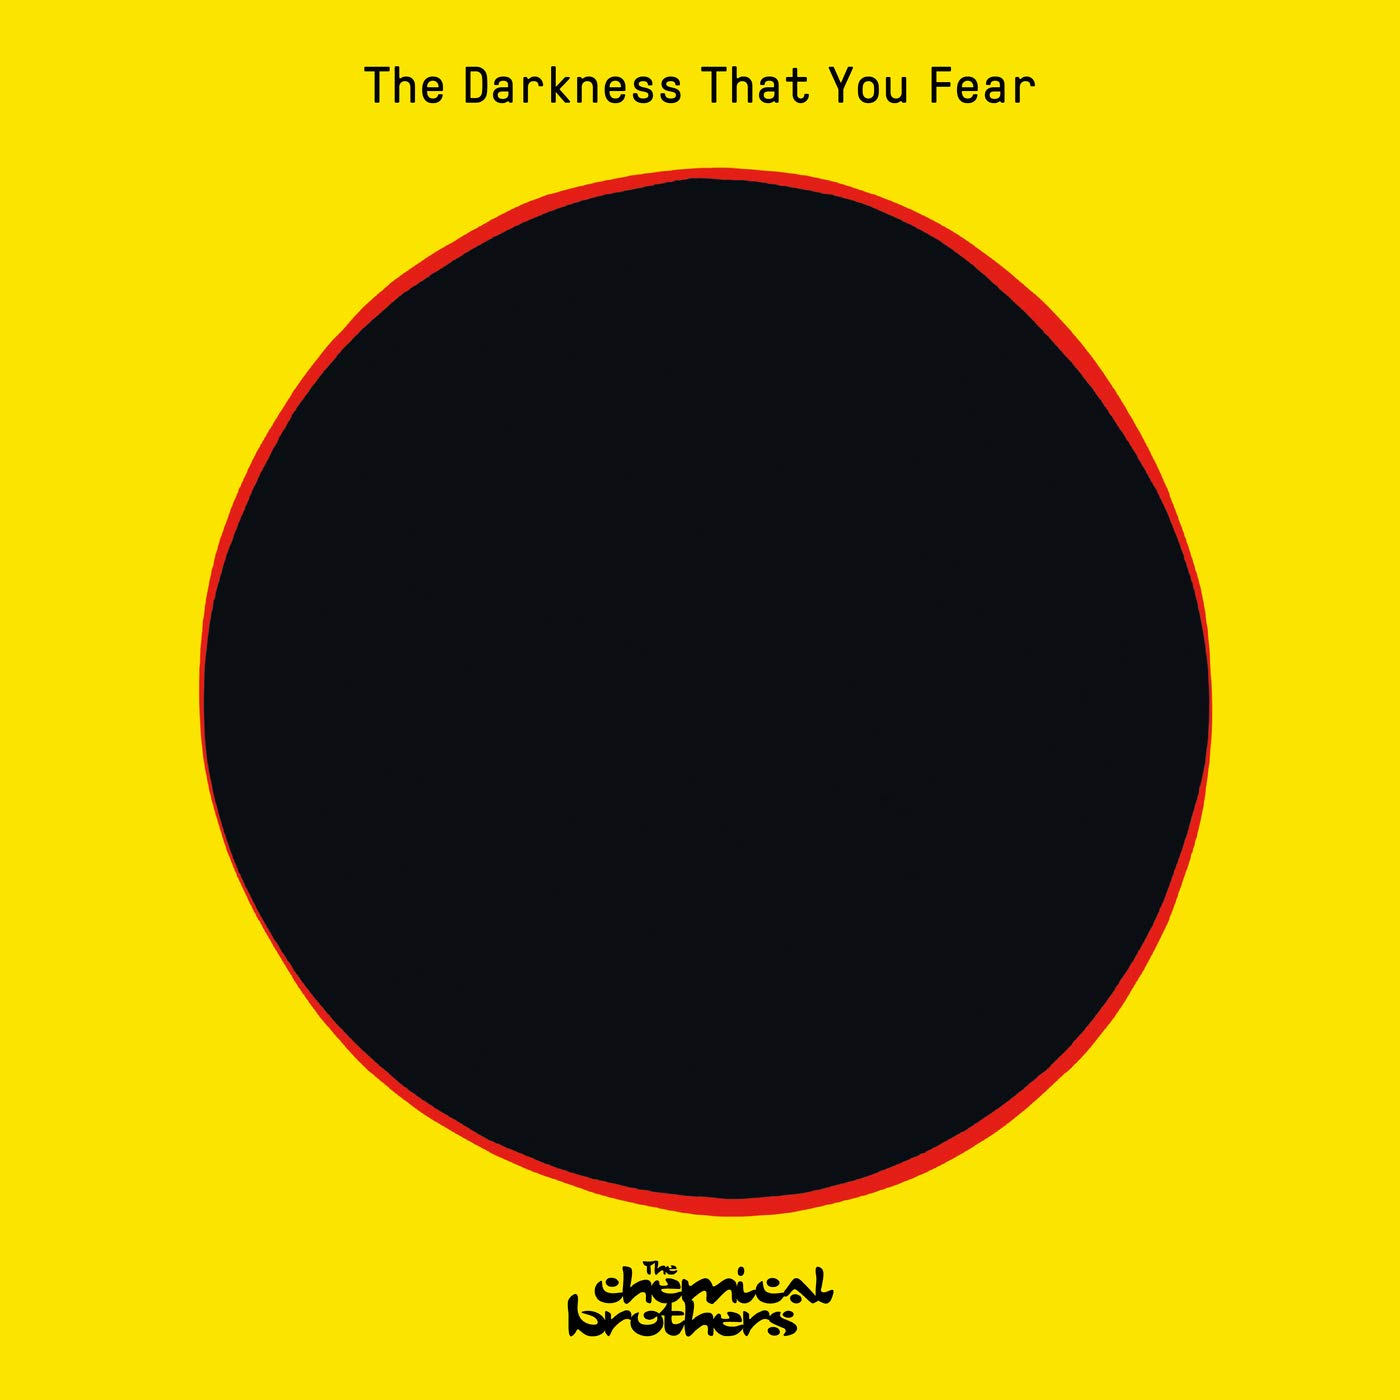 The Chemical Brothers - The Darkness That You Fear (2021) [FLAC] Download